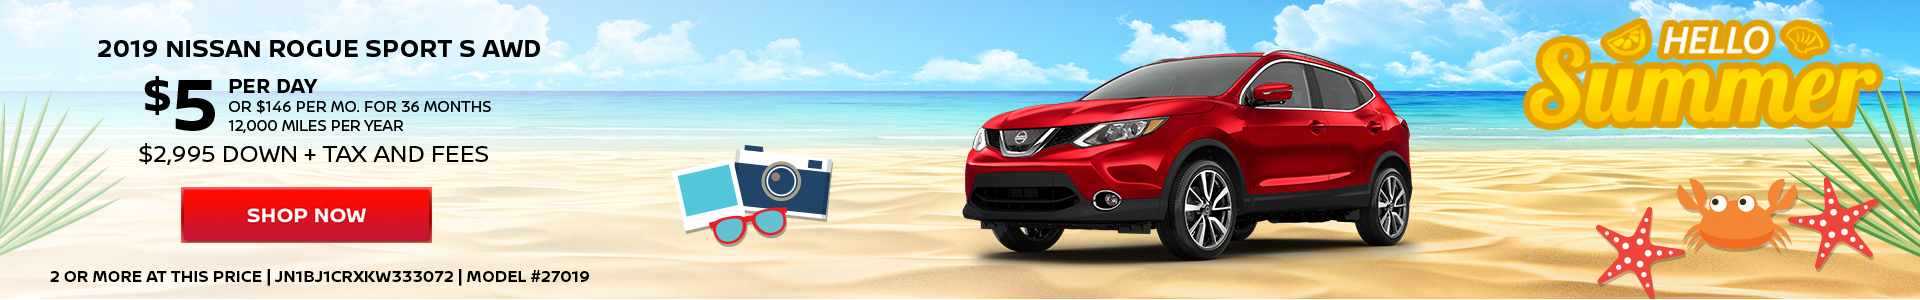 Nissan Rogue Sport $5 Day Lease